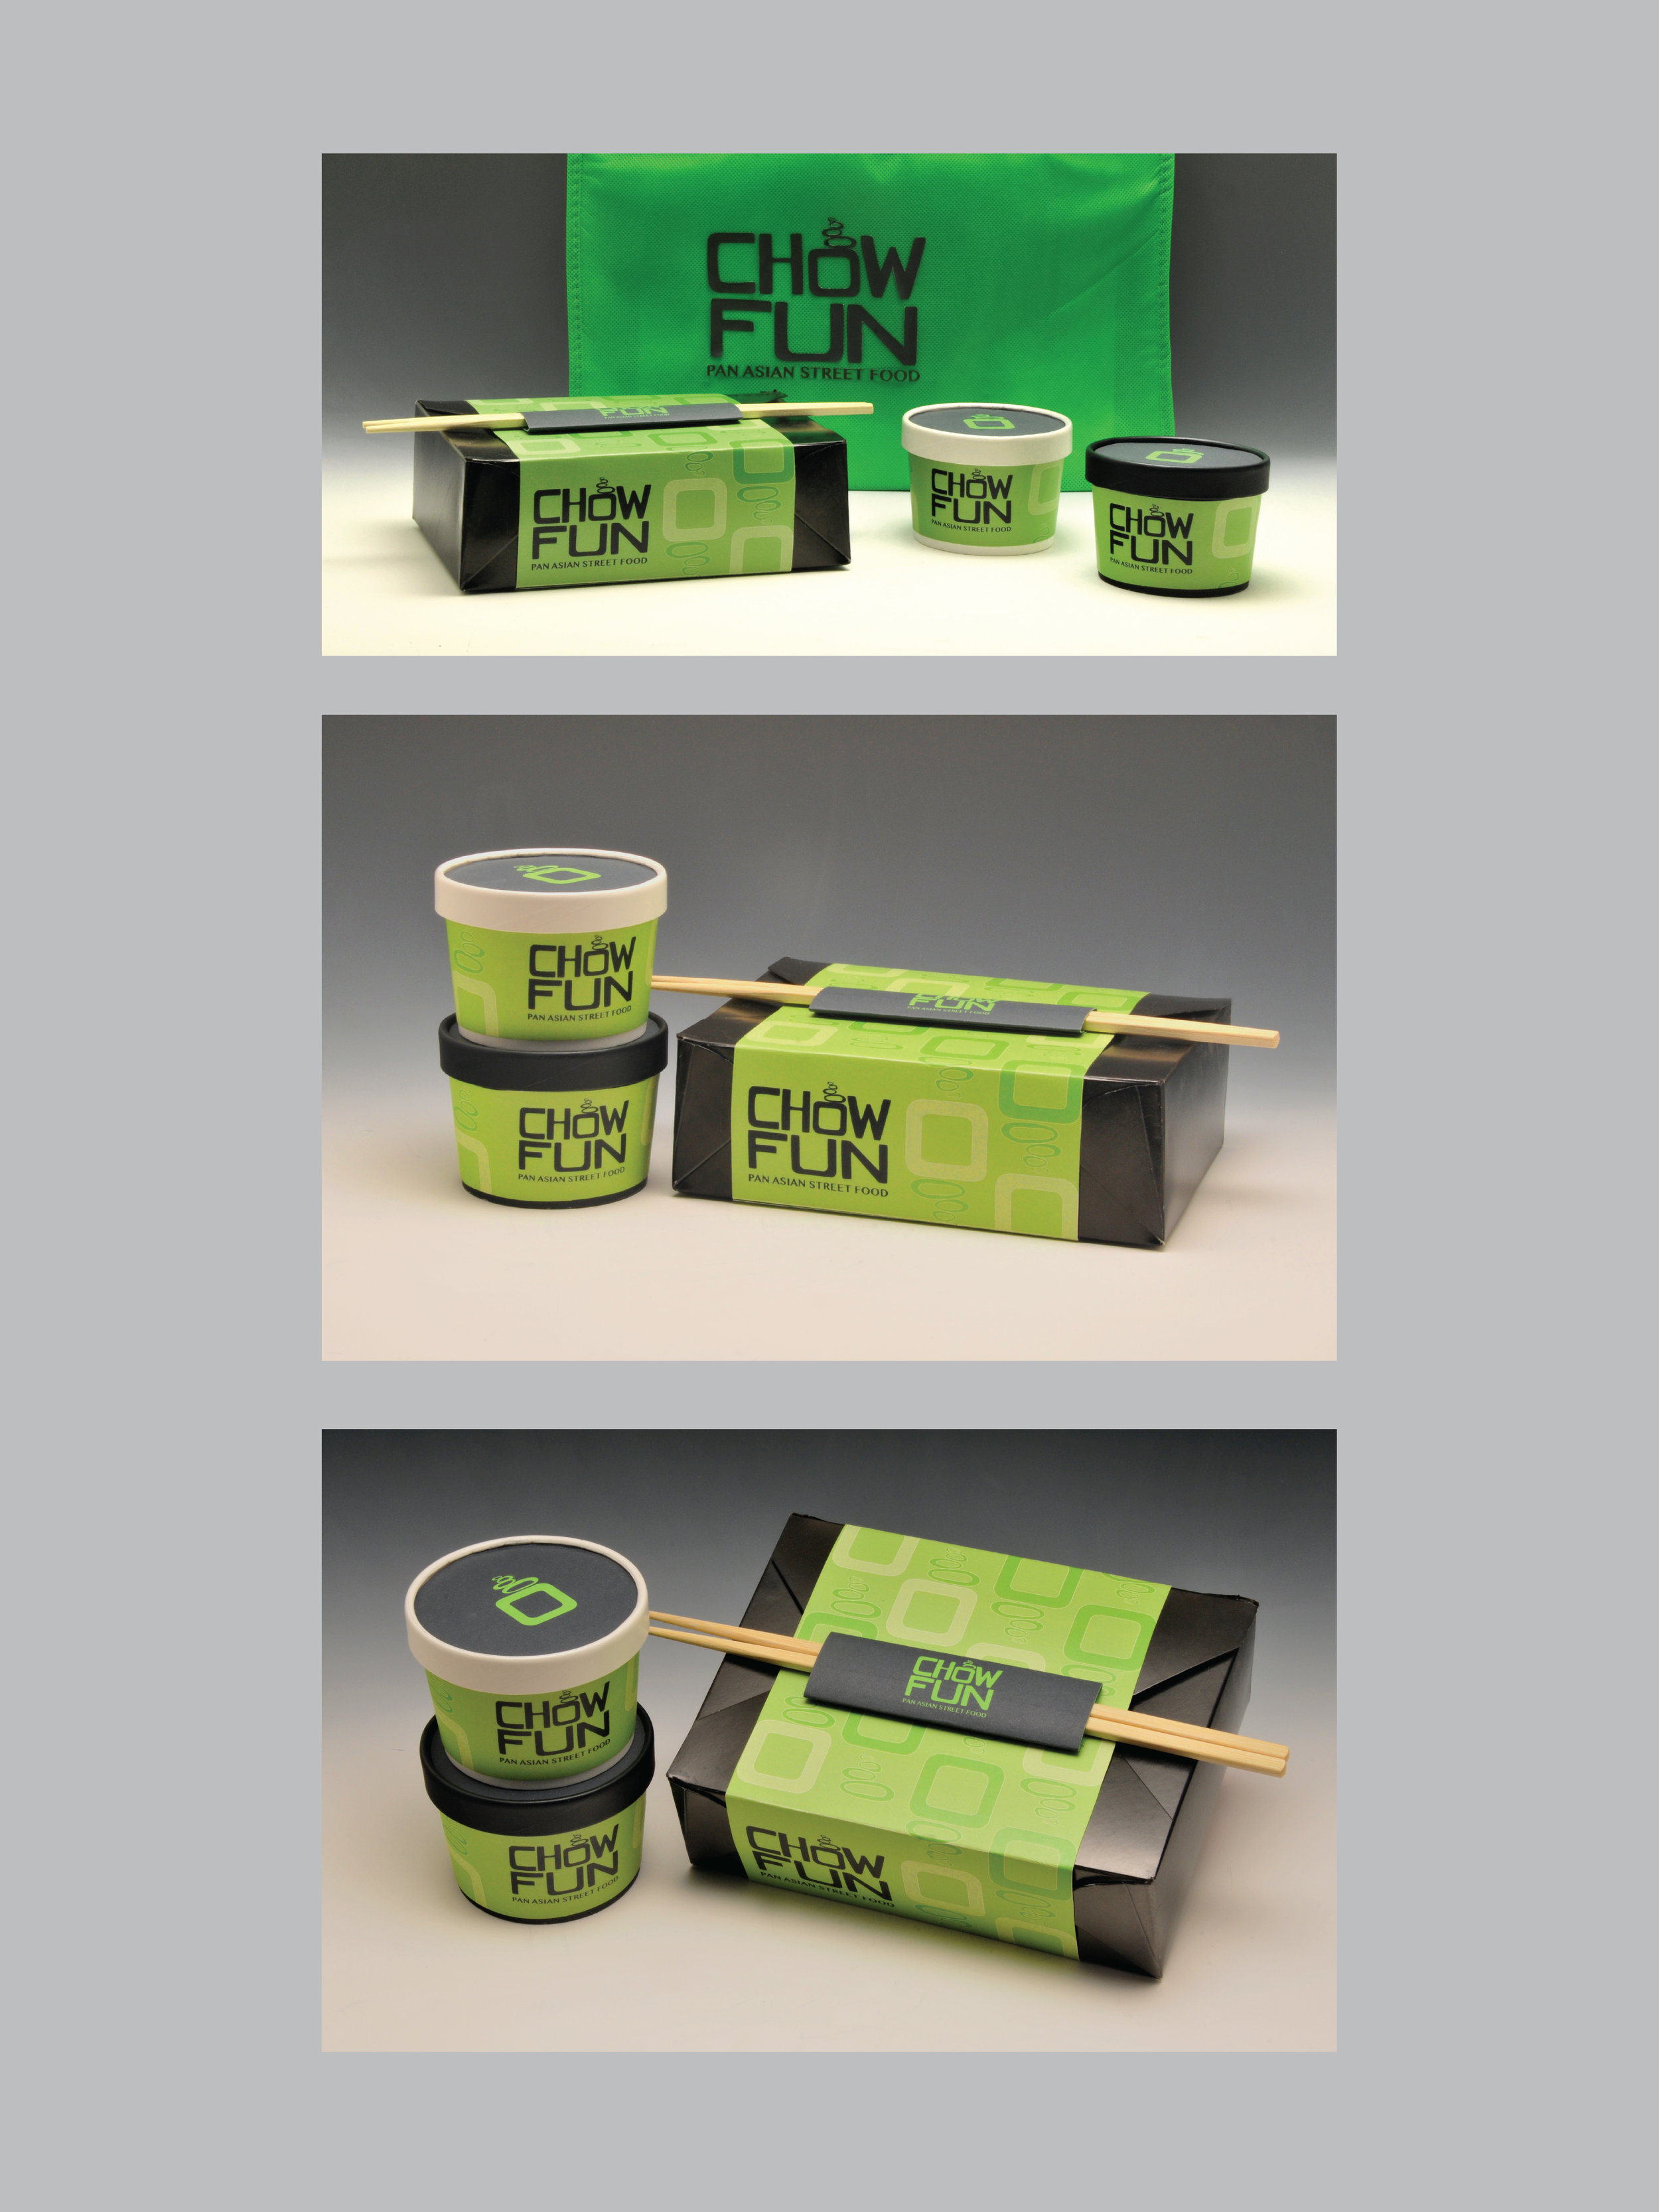 Chow Fun Take Out Package Design